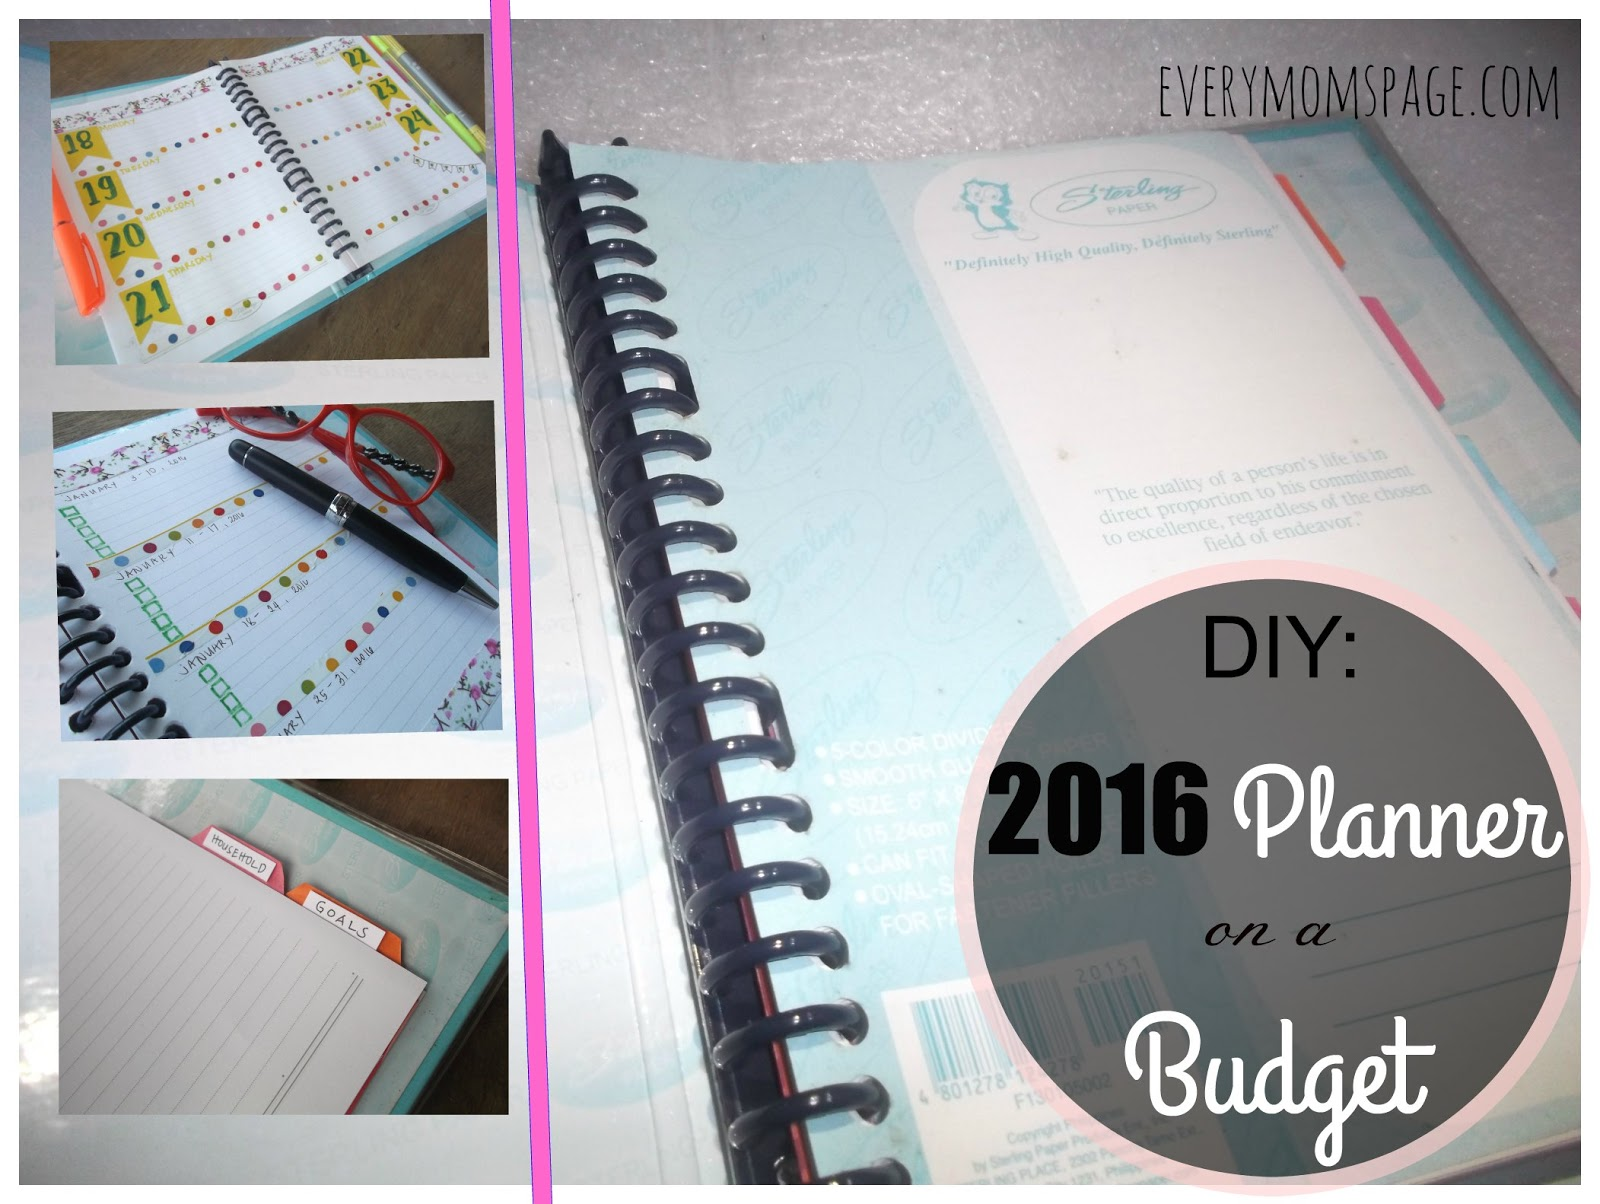 Everymomspage january 2016 diy 2016 planner on a budget solutioingenieria Gallery